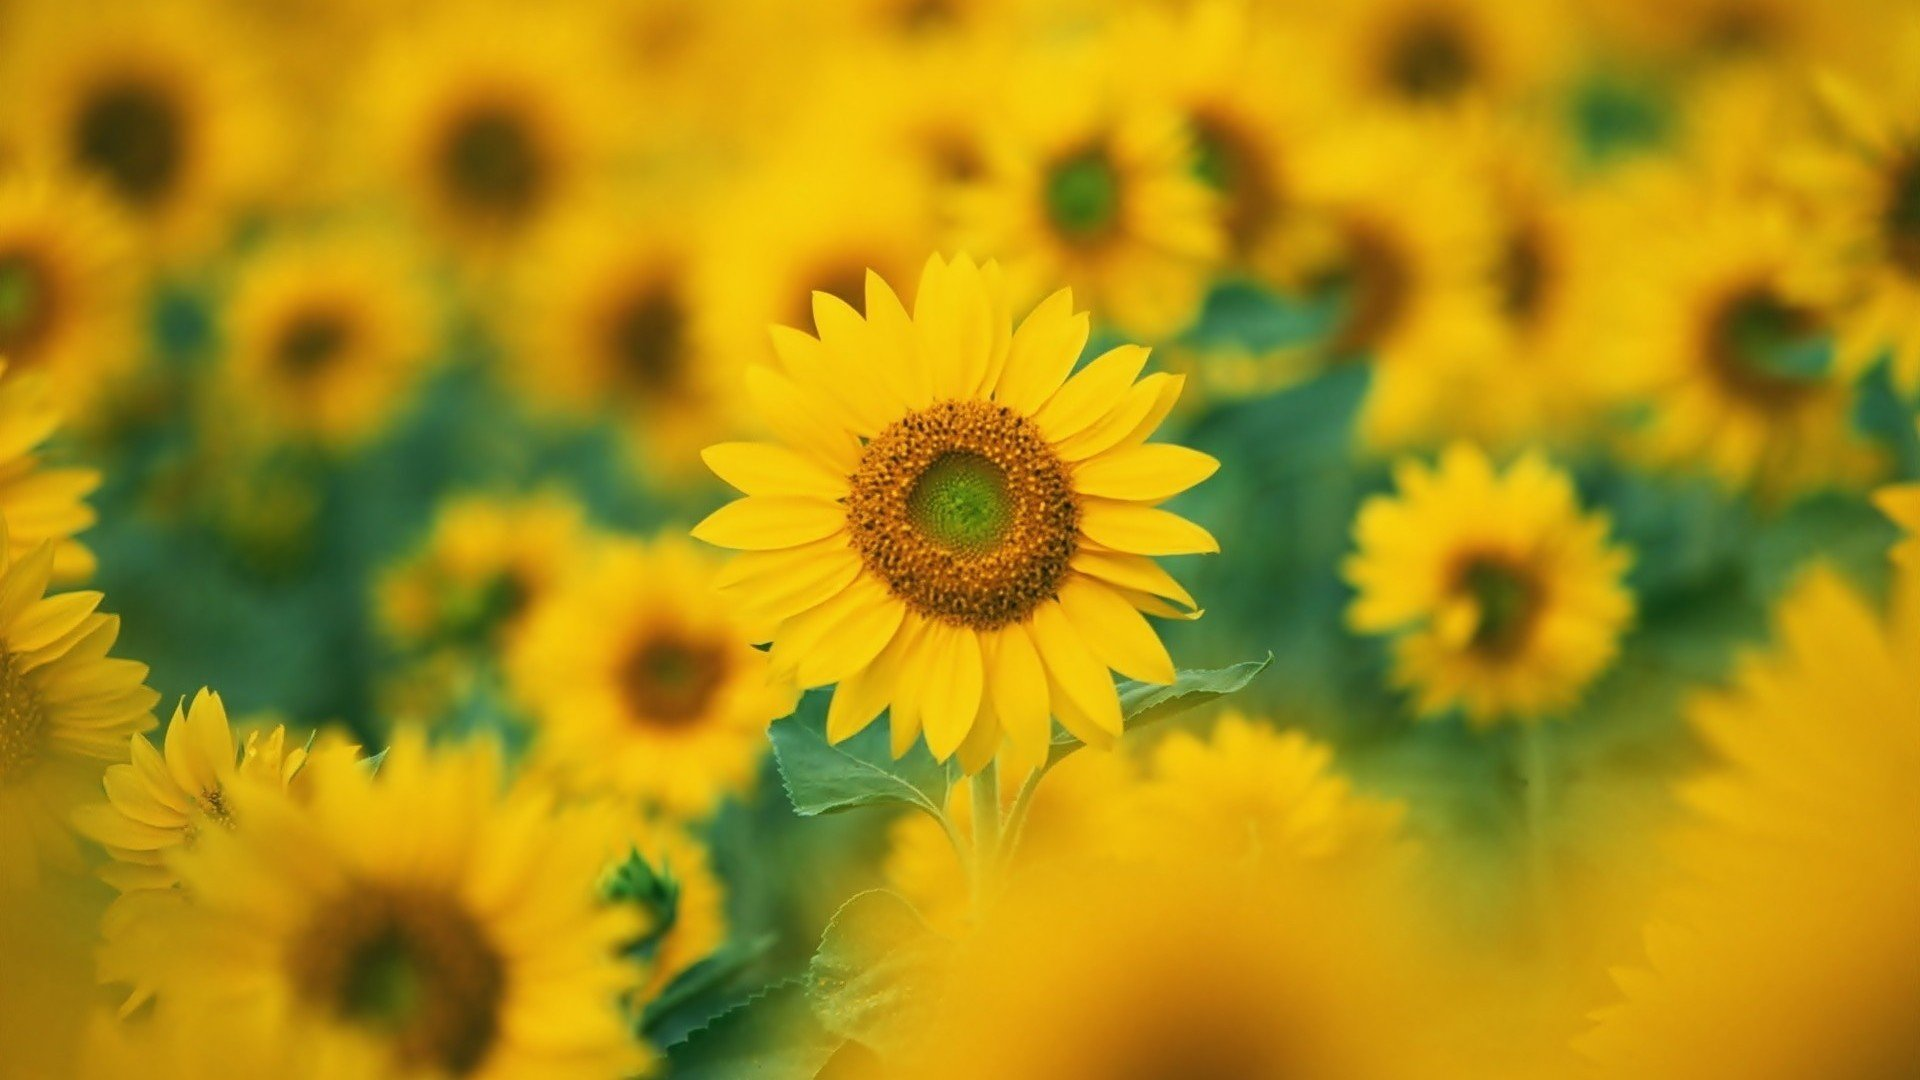 Sunflower Wallpapers 1920x1080 Full Hd 1080p Desktop Backgrounds